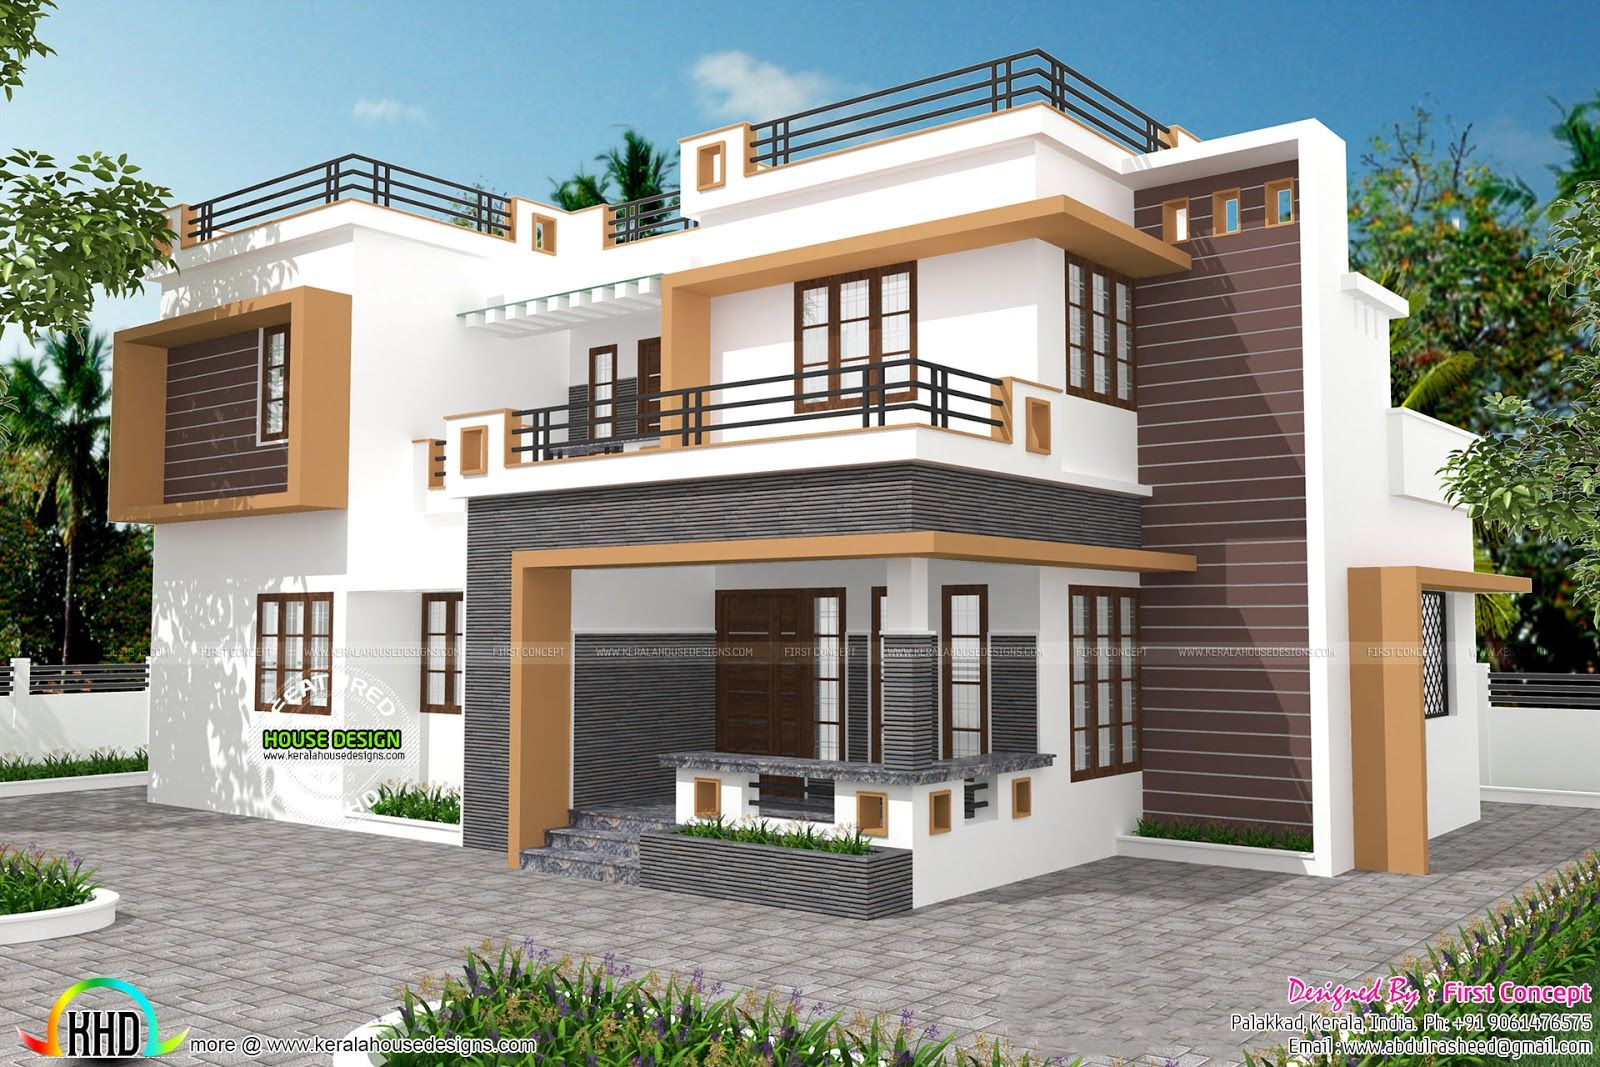 Contemporary Home Design By First Concept Palakkad